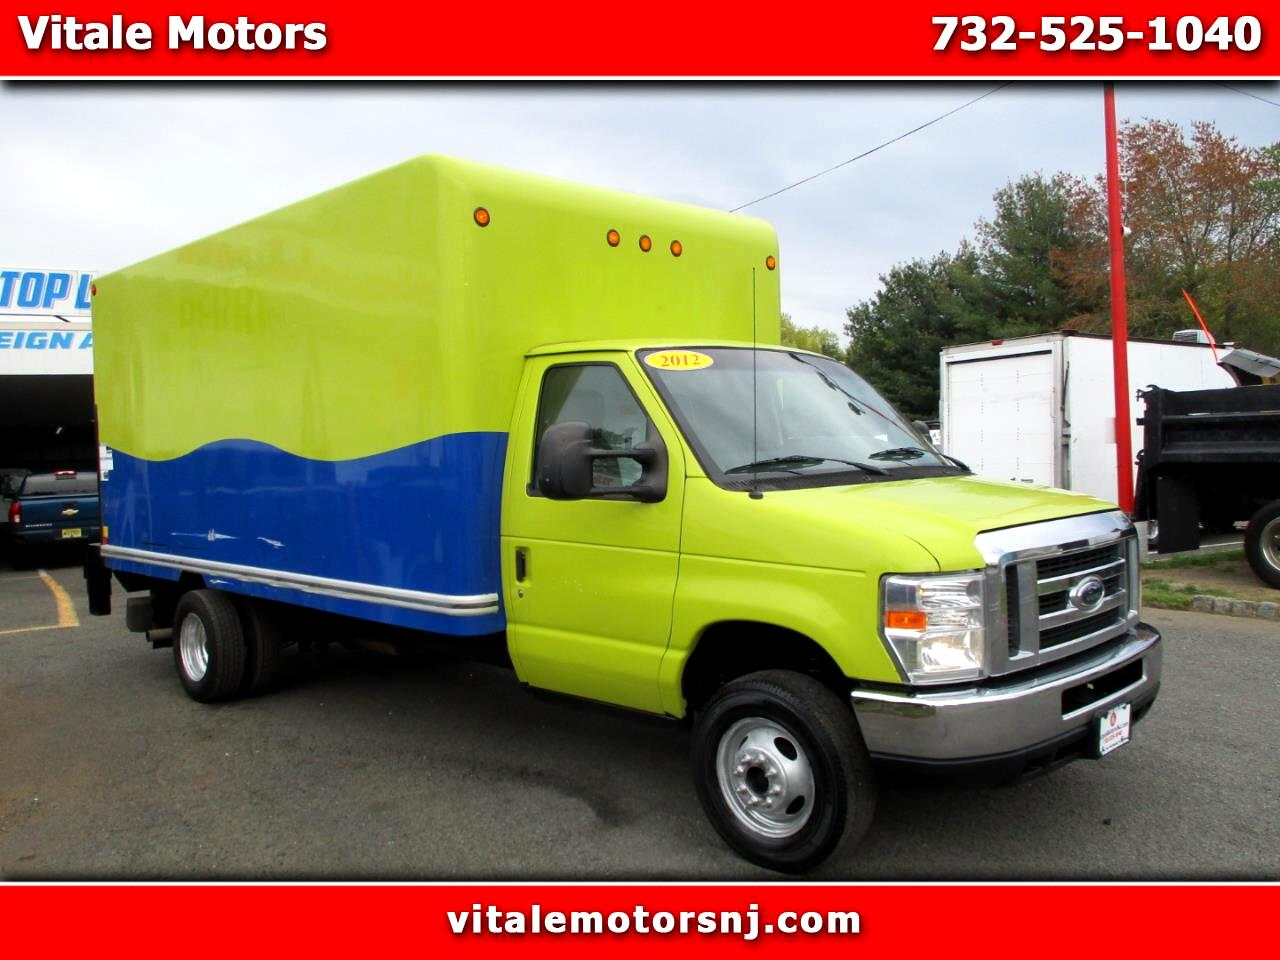 2012 Ford Econoline E450 BOX TRUCK 15 FOOT